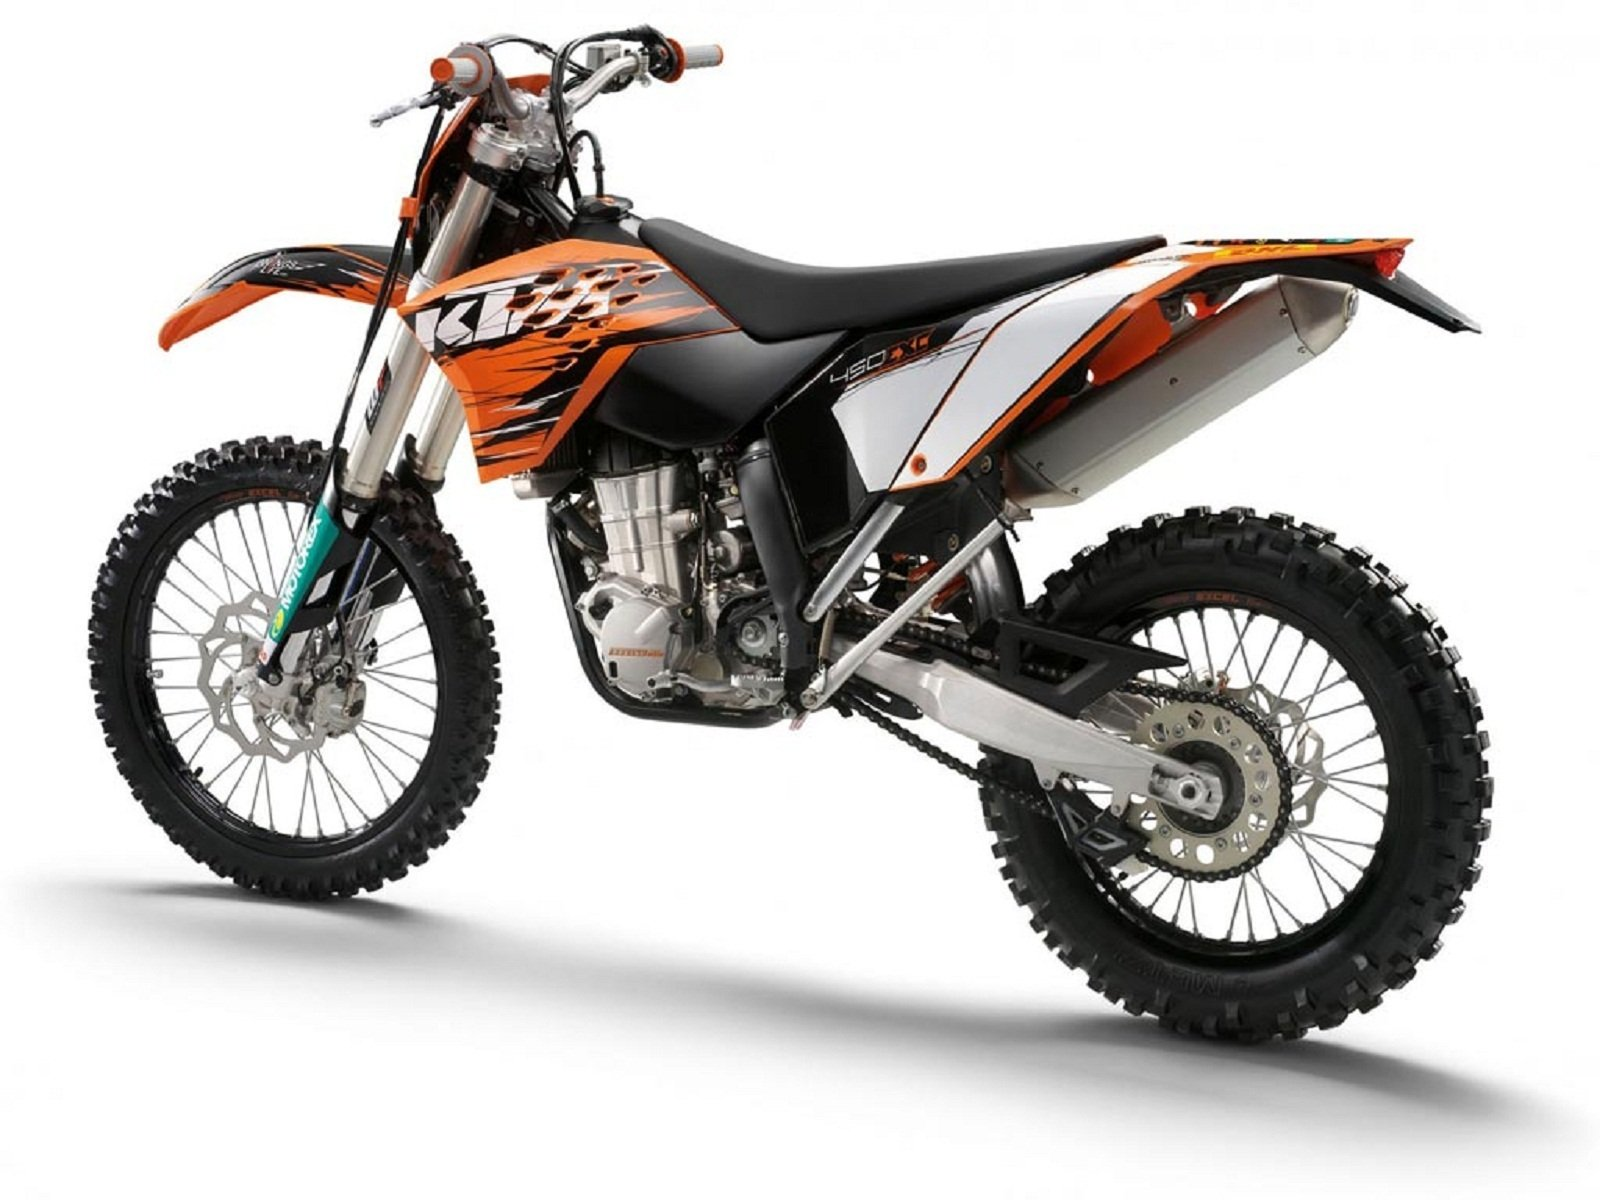 2012 ktm 450 exc picture 435495 motorcycle review top speed. Black Bedroom Furniture Sets. Home Design Ideas